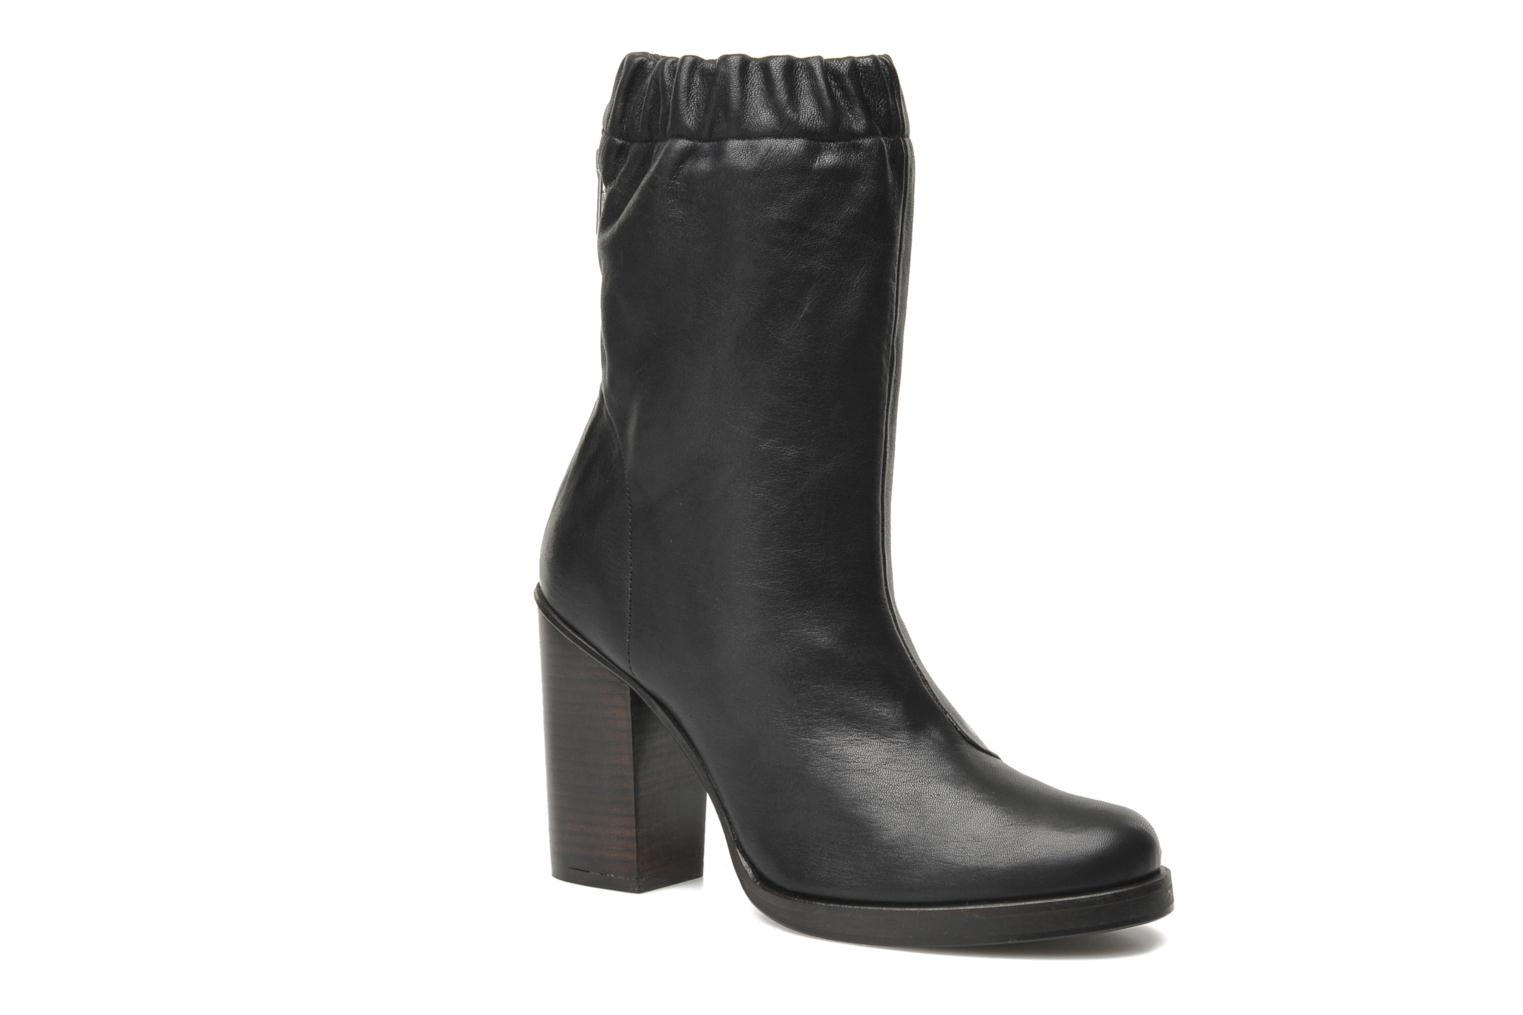 ZapatosOpening (Negro) Ceremony Lucie Mid Boot (Negro) ZapatosOpening - Botines    Gran descuento 8a2450